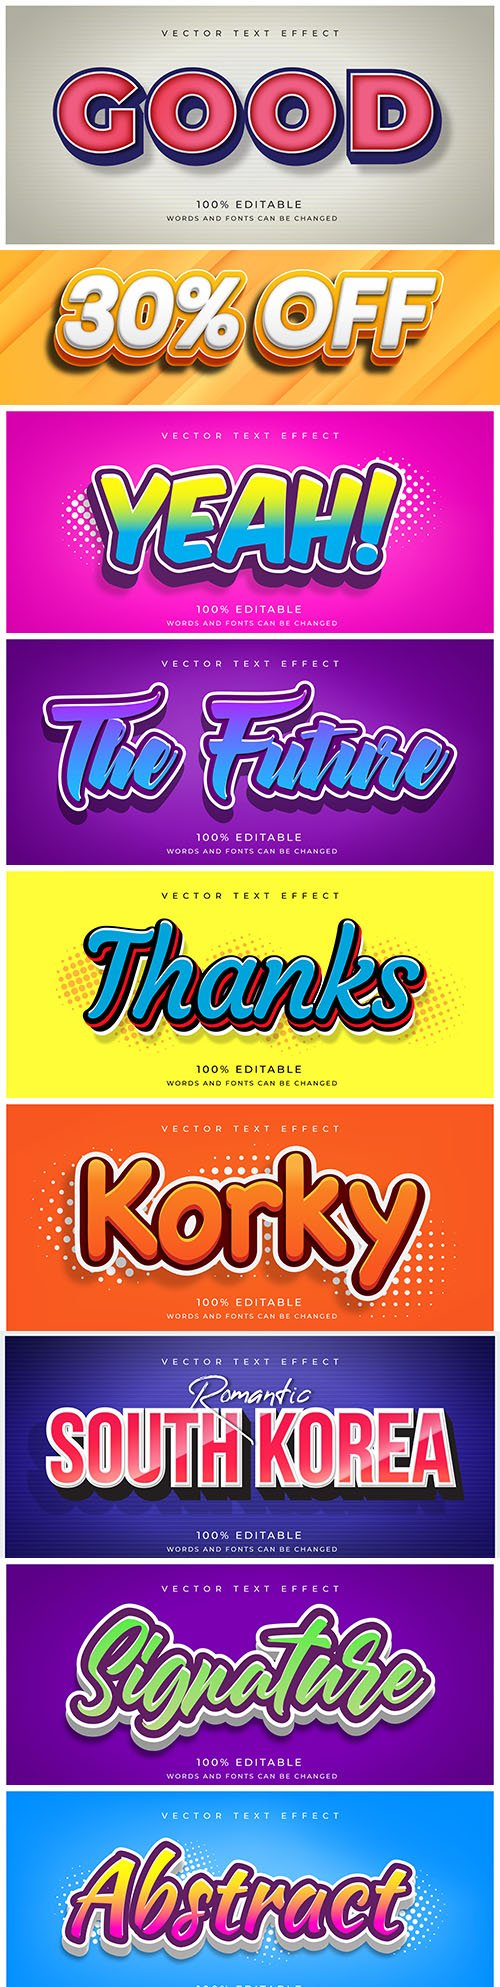 Editable font effect text collection illustration design 204